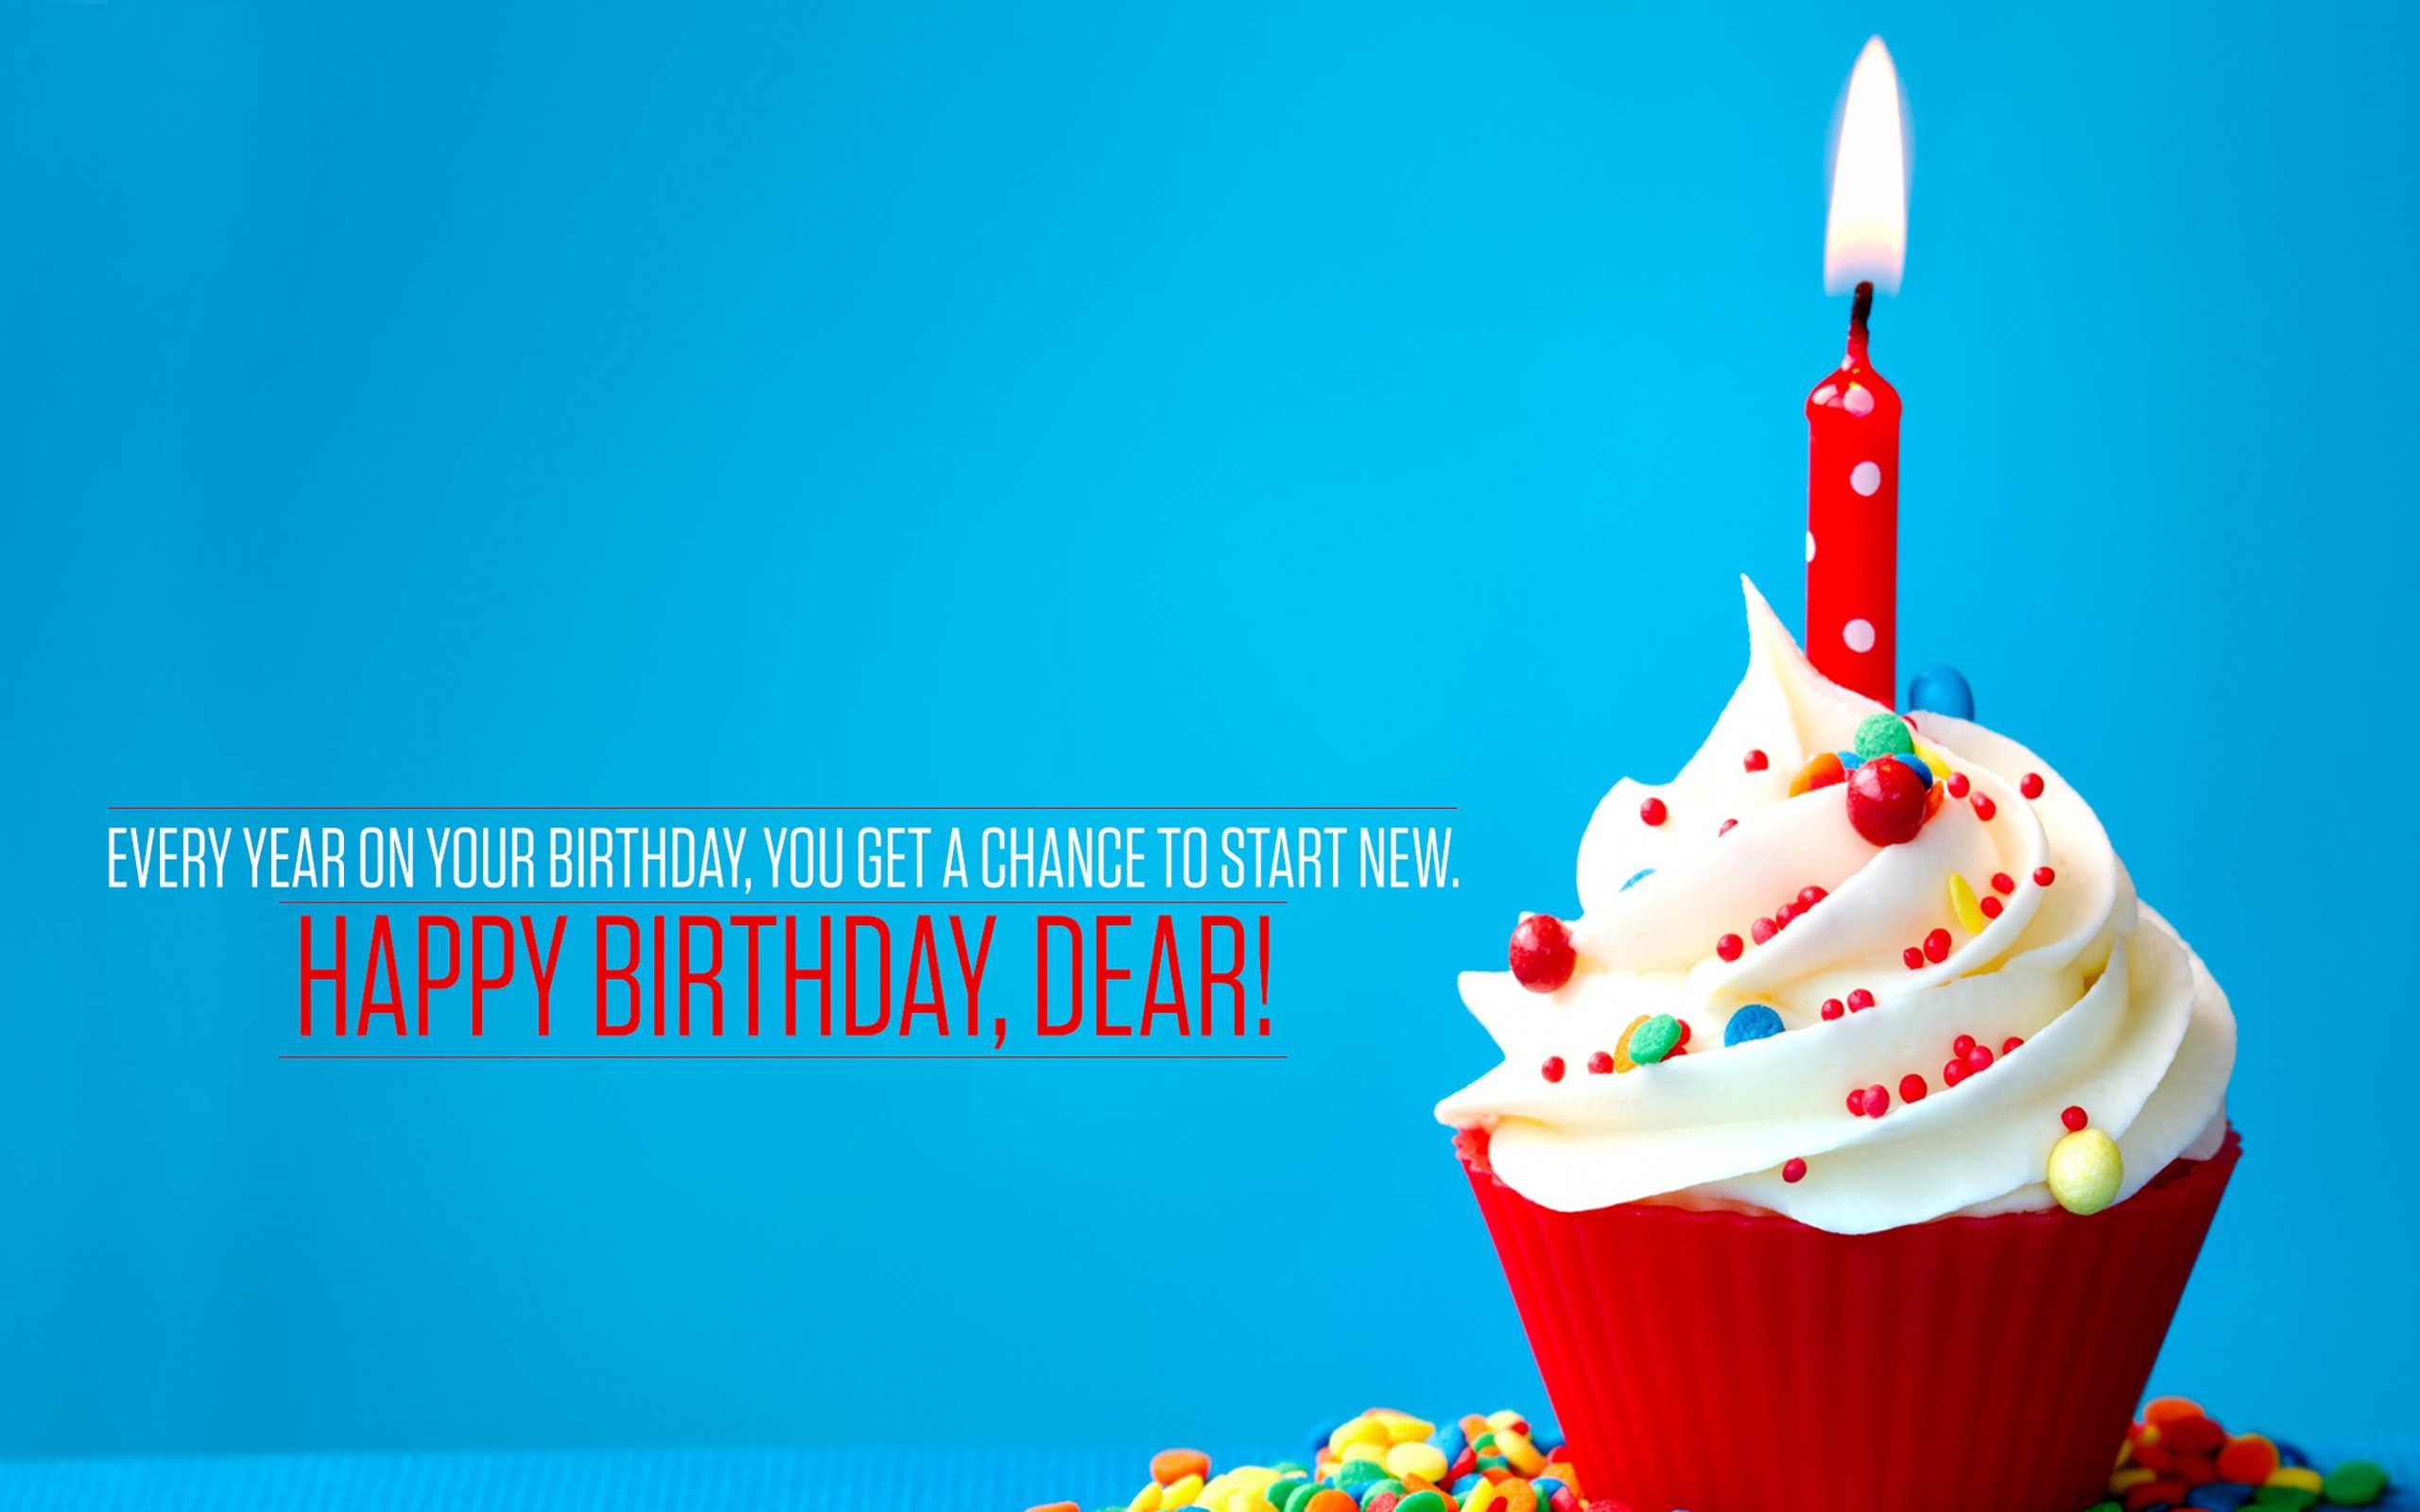 Happy Birthday Wishes Hd Wallpaper Only Hd Wallpapers Happy Birthd 2560x1600